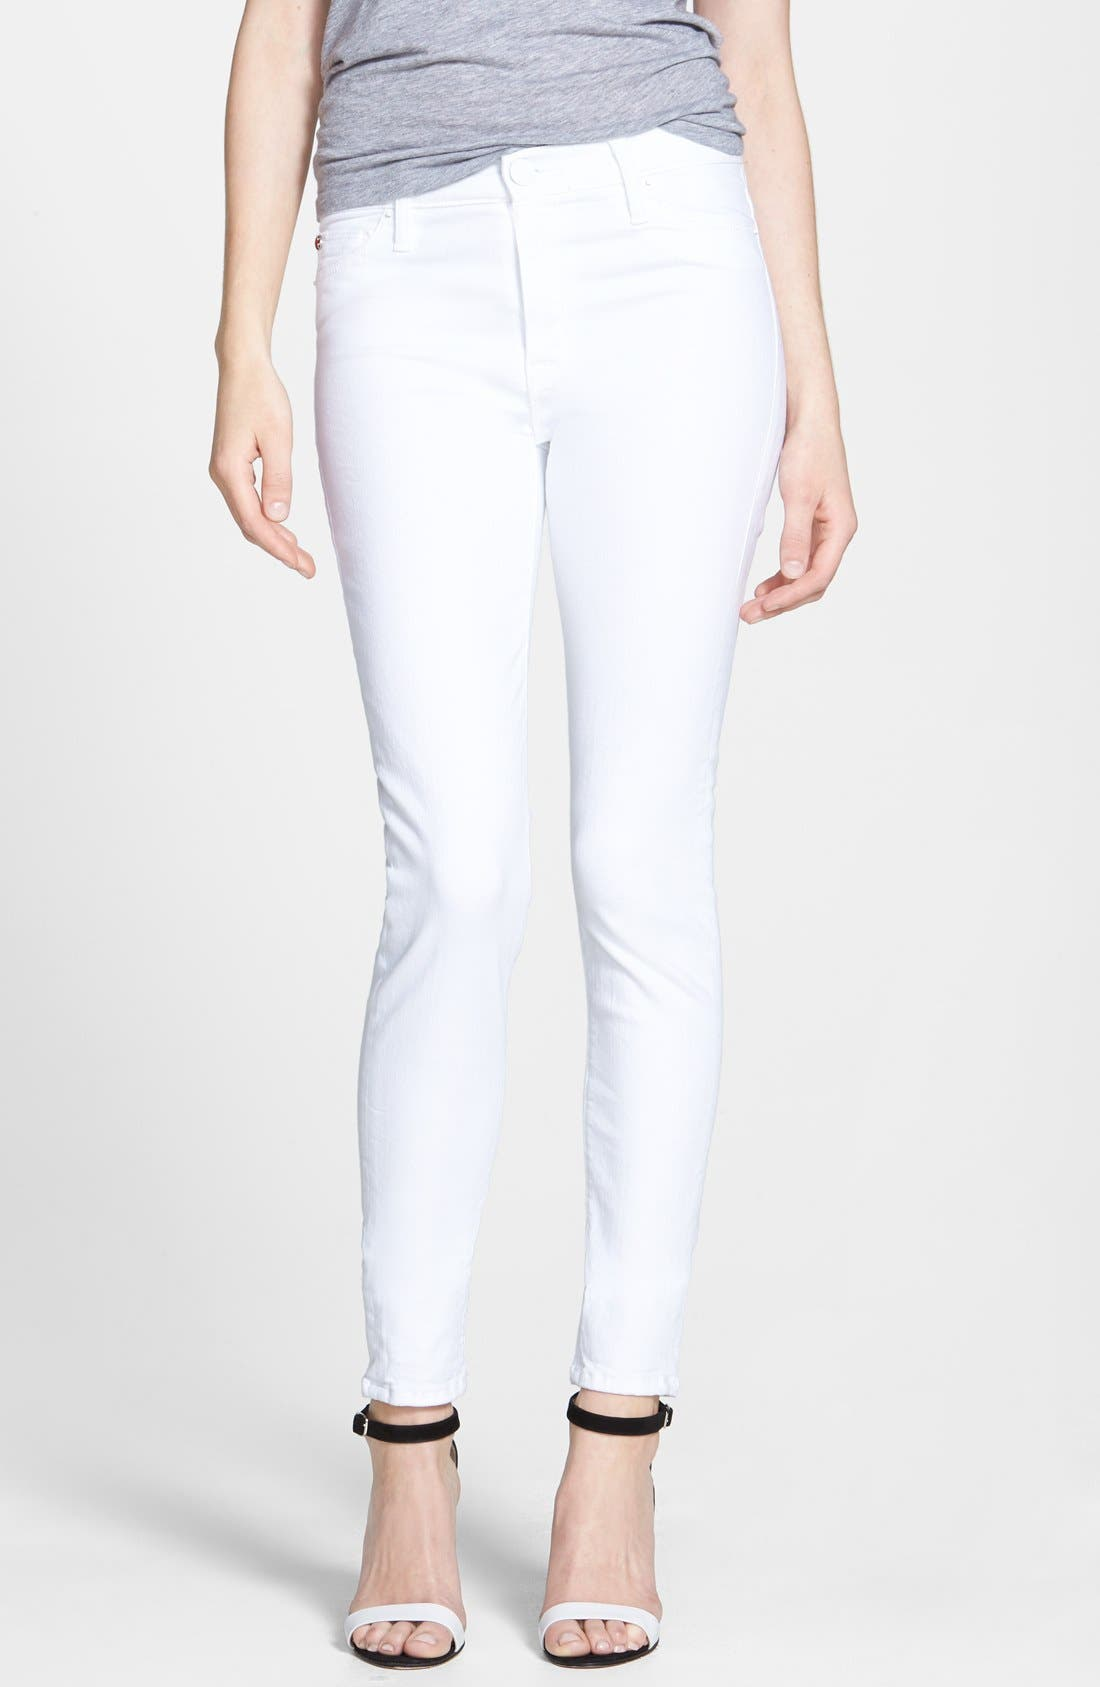 Main Image - Hudson Jeans 'Nico' Skinny Stretch Jeans (White)